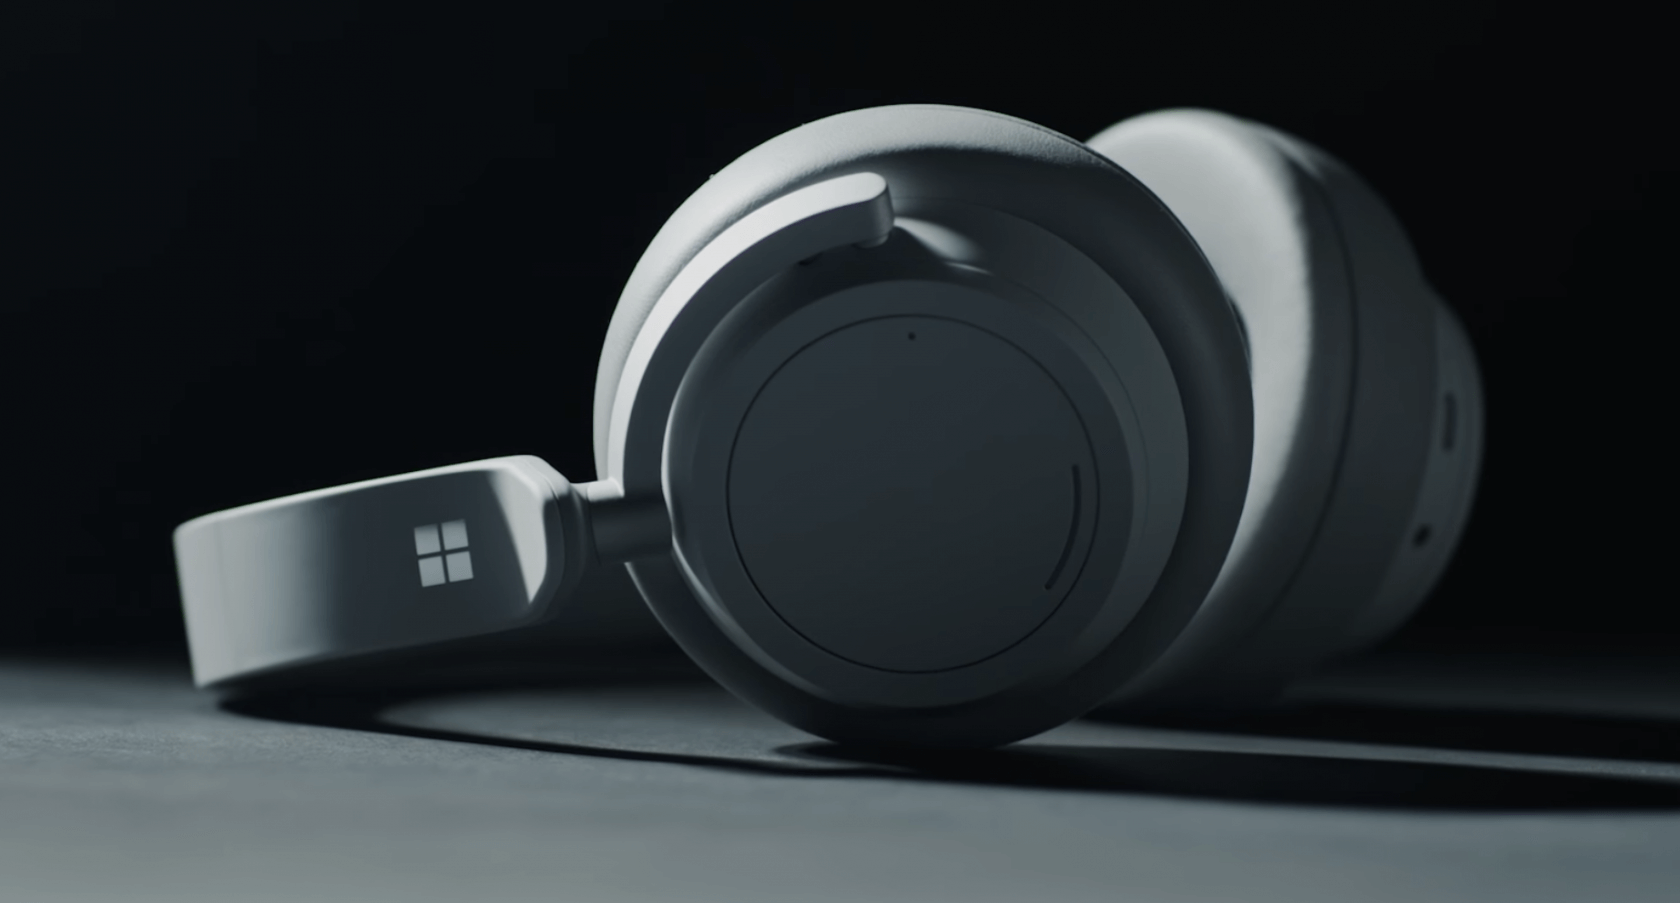 Microsoft's Surface Headphones are set to launch on November 19